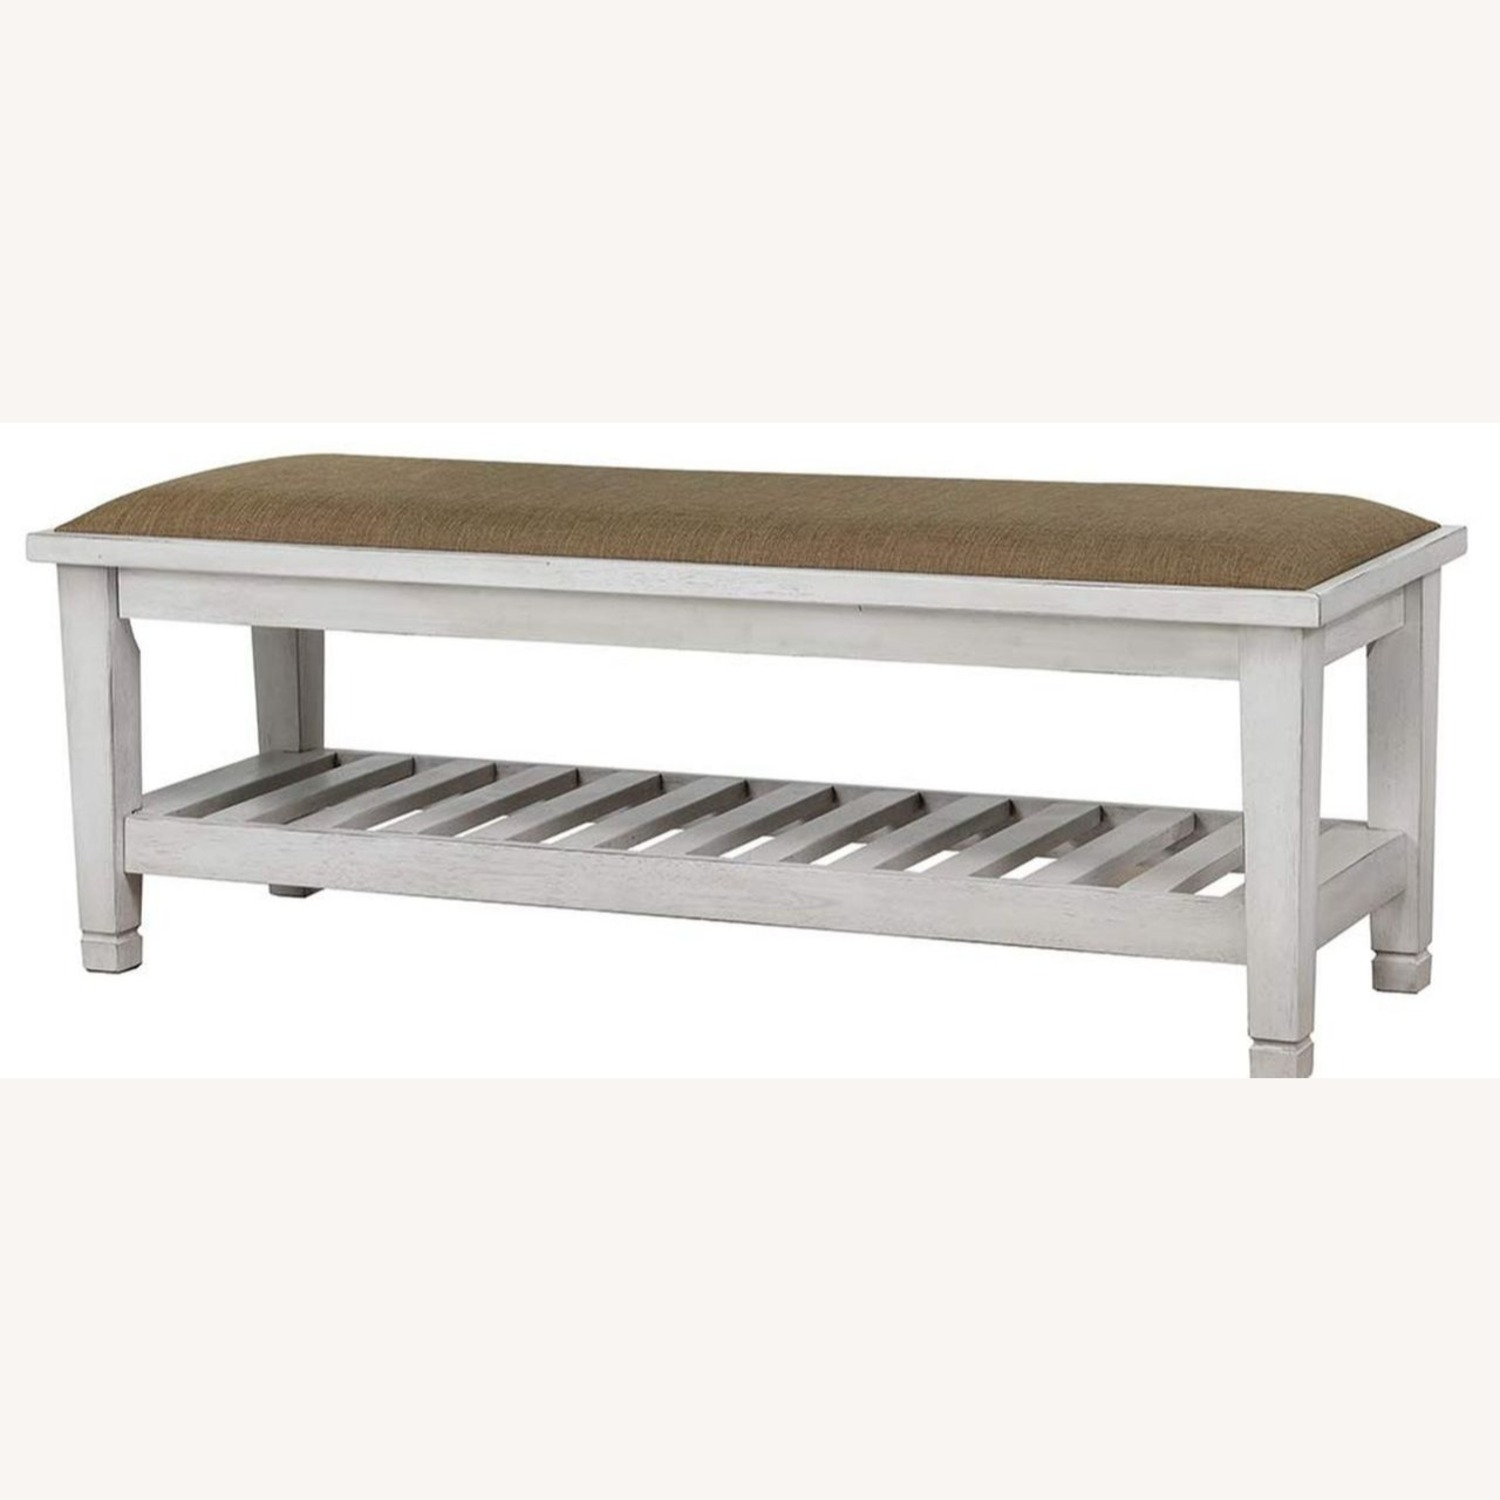 Bench In Antique White Finish W/ Brown Fabric - image-1